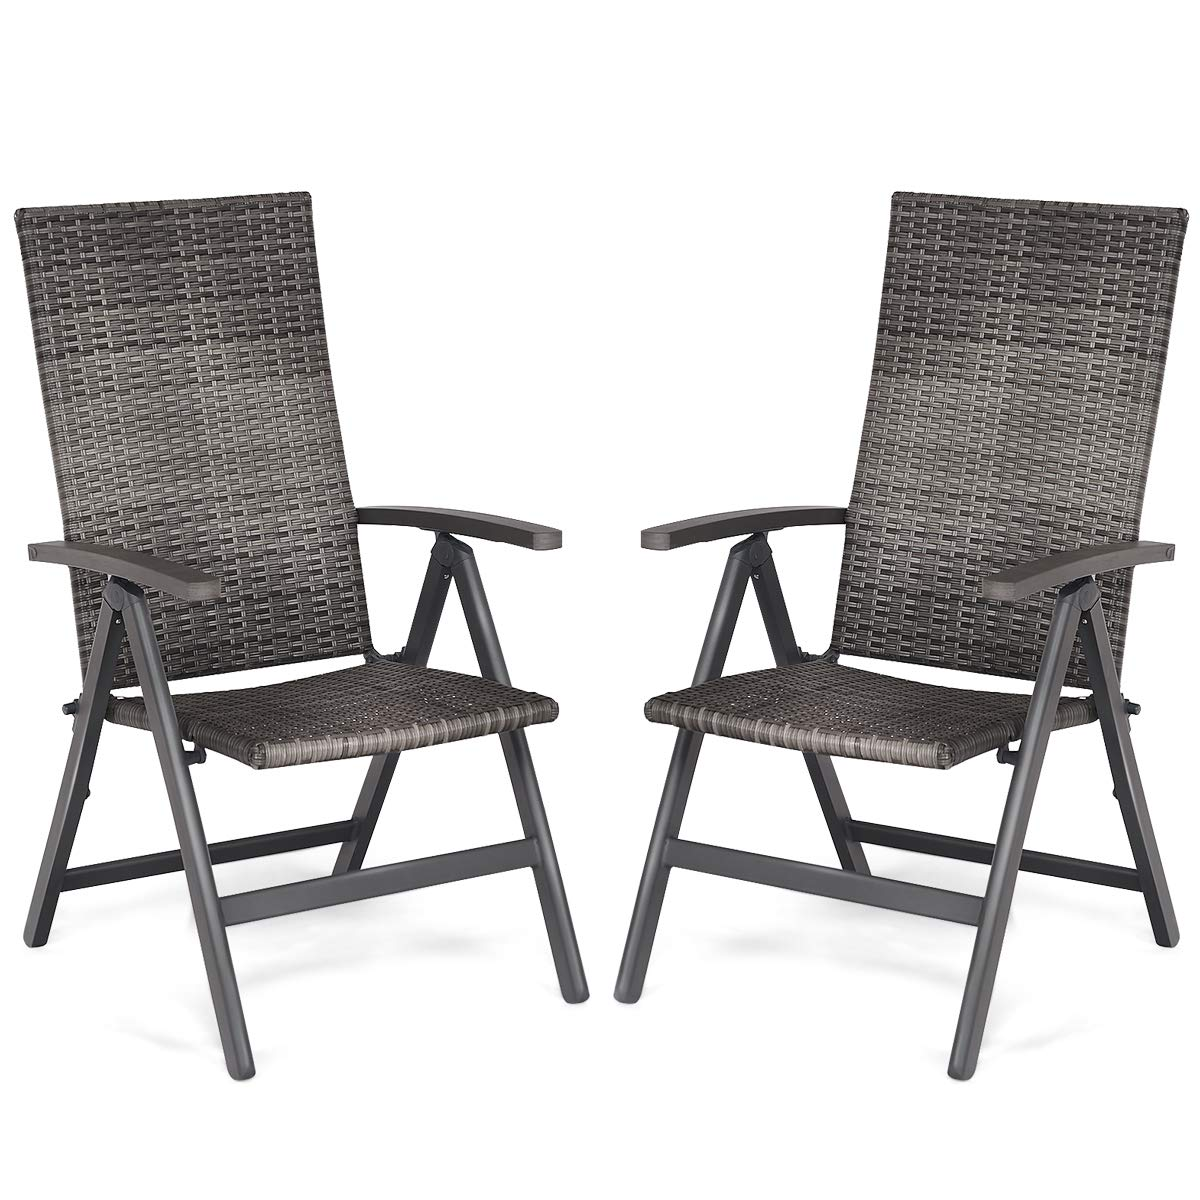 Tangkula 2 PCS Rattan Folding Chairs Outdoor Patio Garden Pool Wicker Chairs with 5 Adjustable Positions Back Adjustable Camping Rattan Reclining Chairs Folding Portable and Beach Deck Chair with Arm by Tangkula